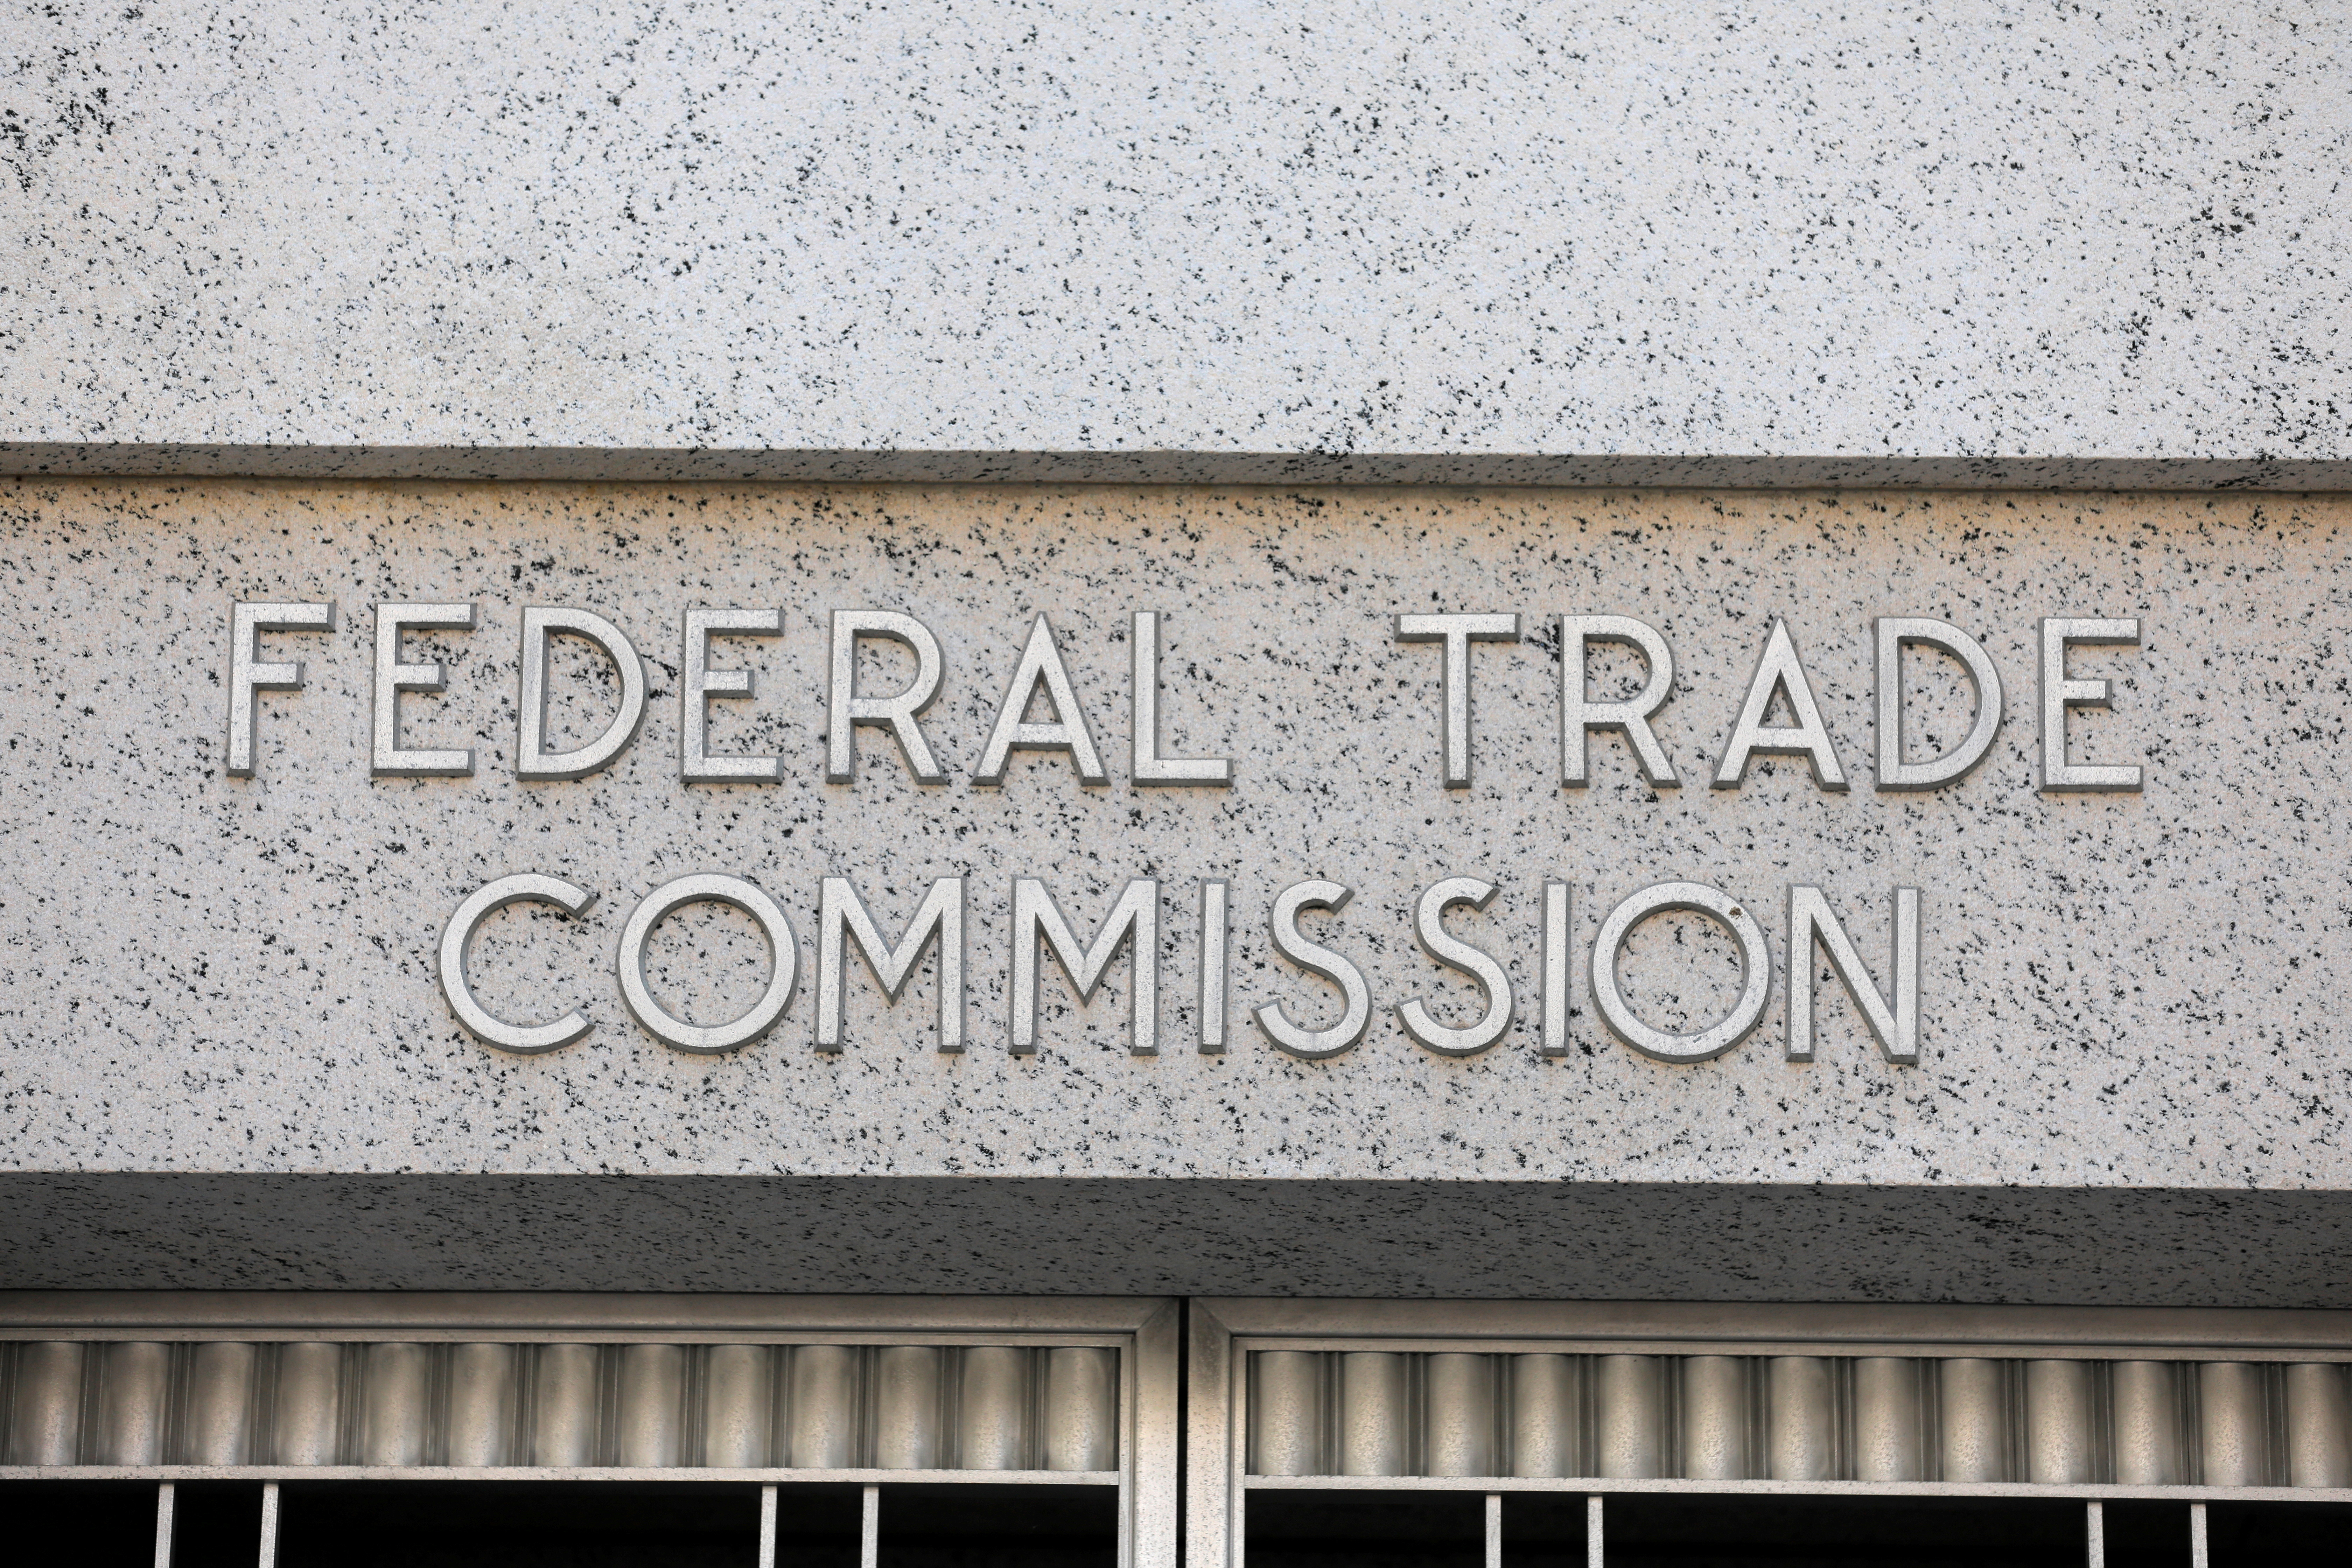 Signage is seen at the Federal Trade Commission headquarters in Washington, D.C., U.S., August 29, 2020. REUTERS/Andrew Kelly